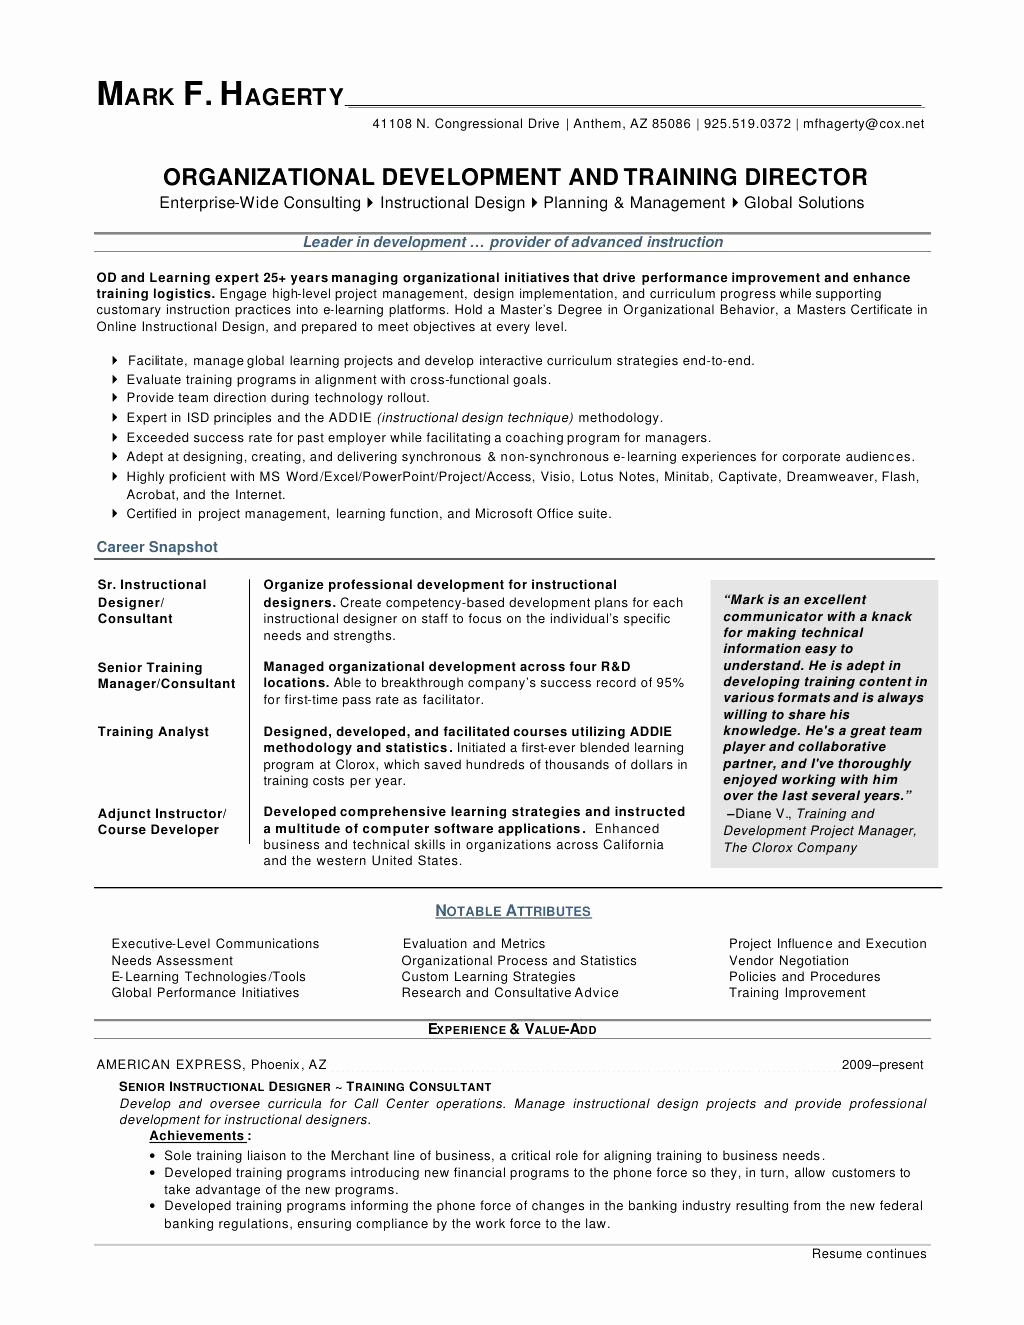 First Time Job Resume Examples - First Time Resume Examples Inspirational Draft Resume Example